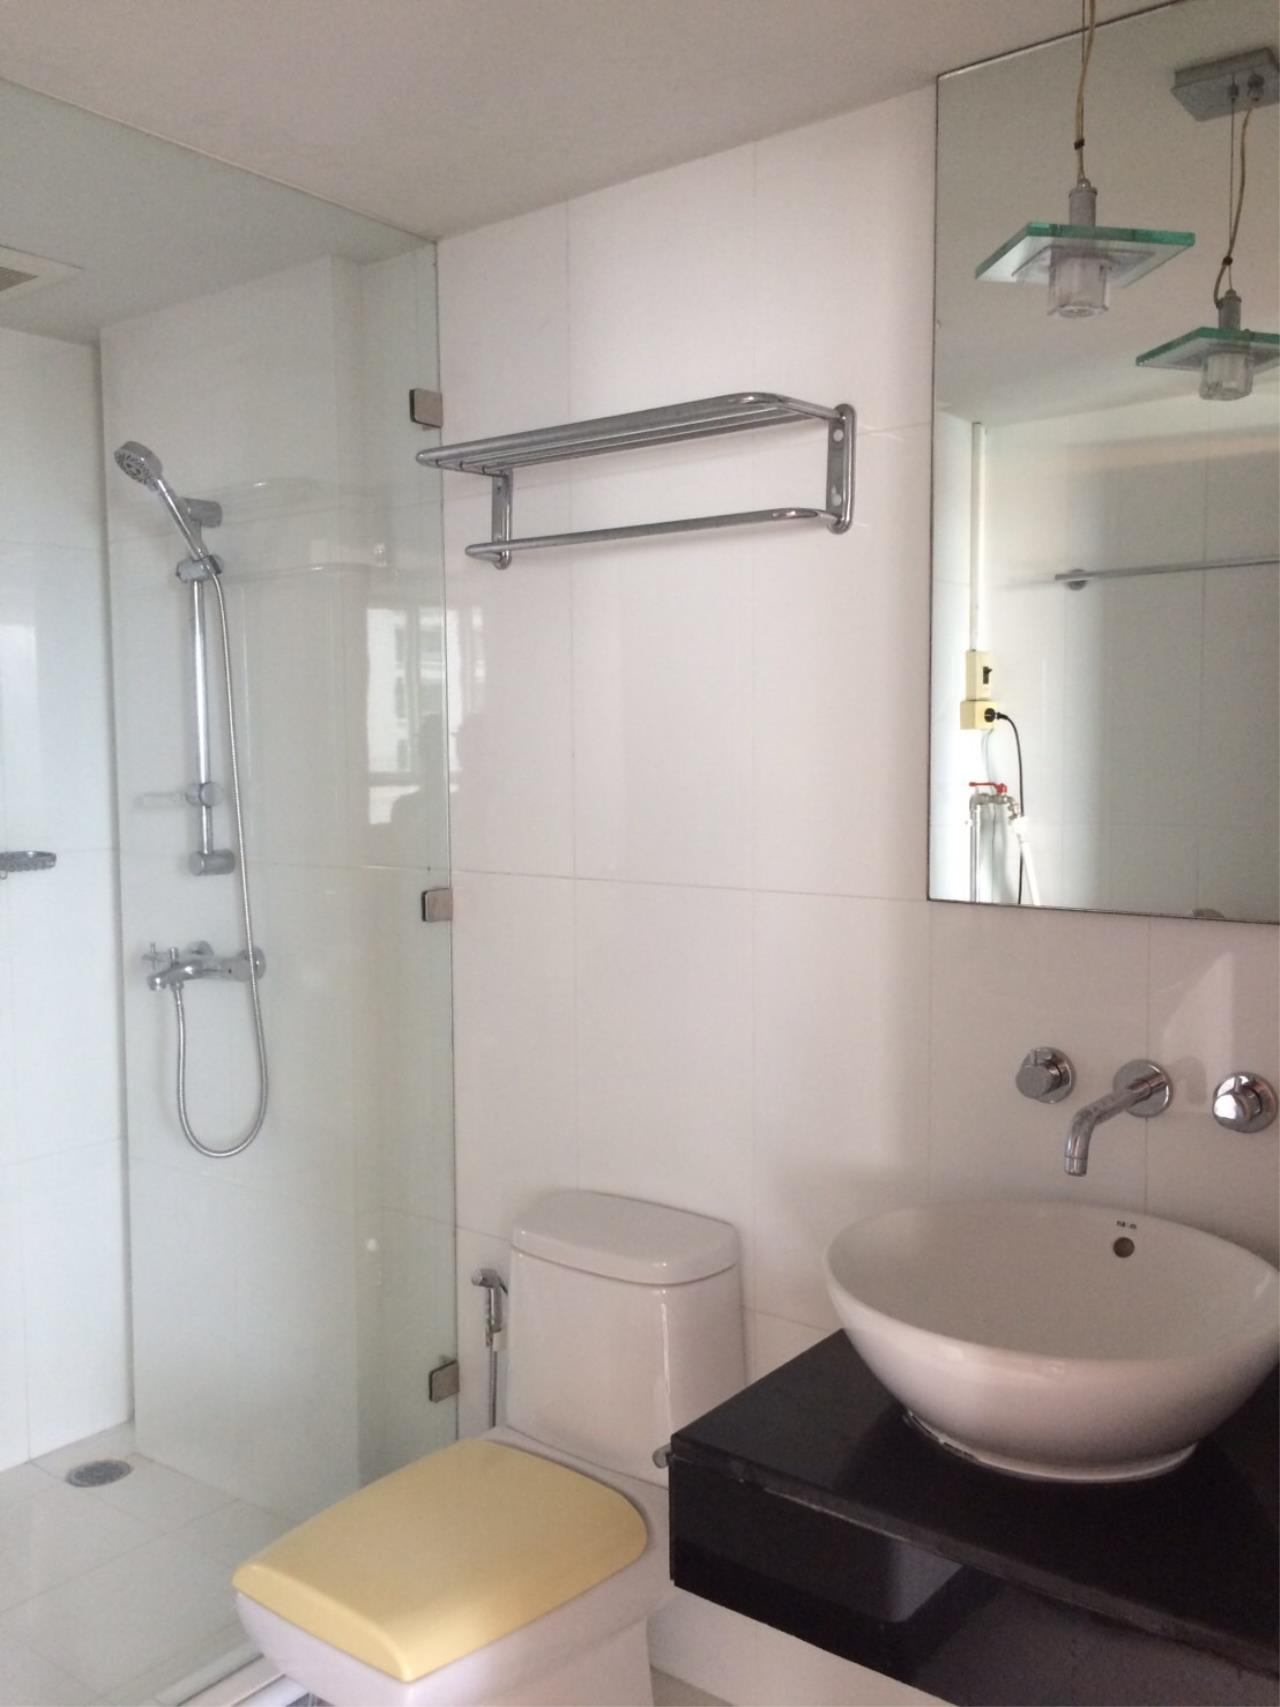 Piri Property Agency's 2 bedrooms Condominium  on 18 floor For Rent 2 4